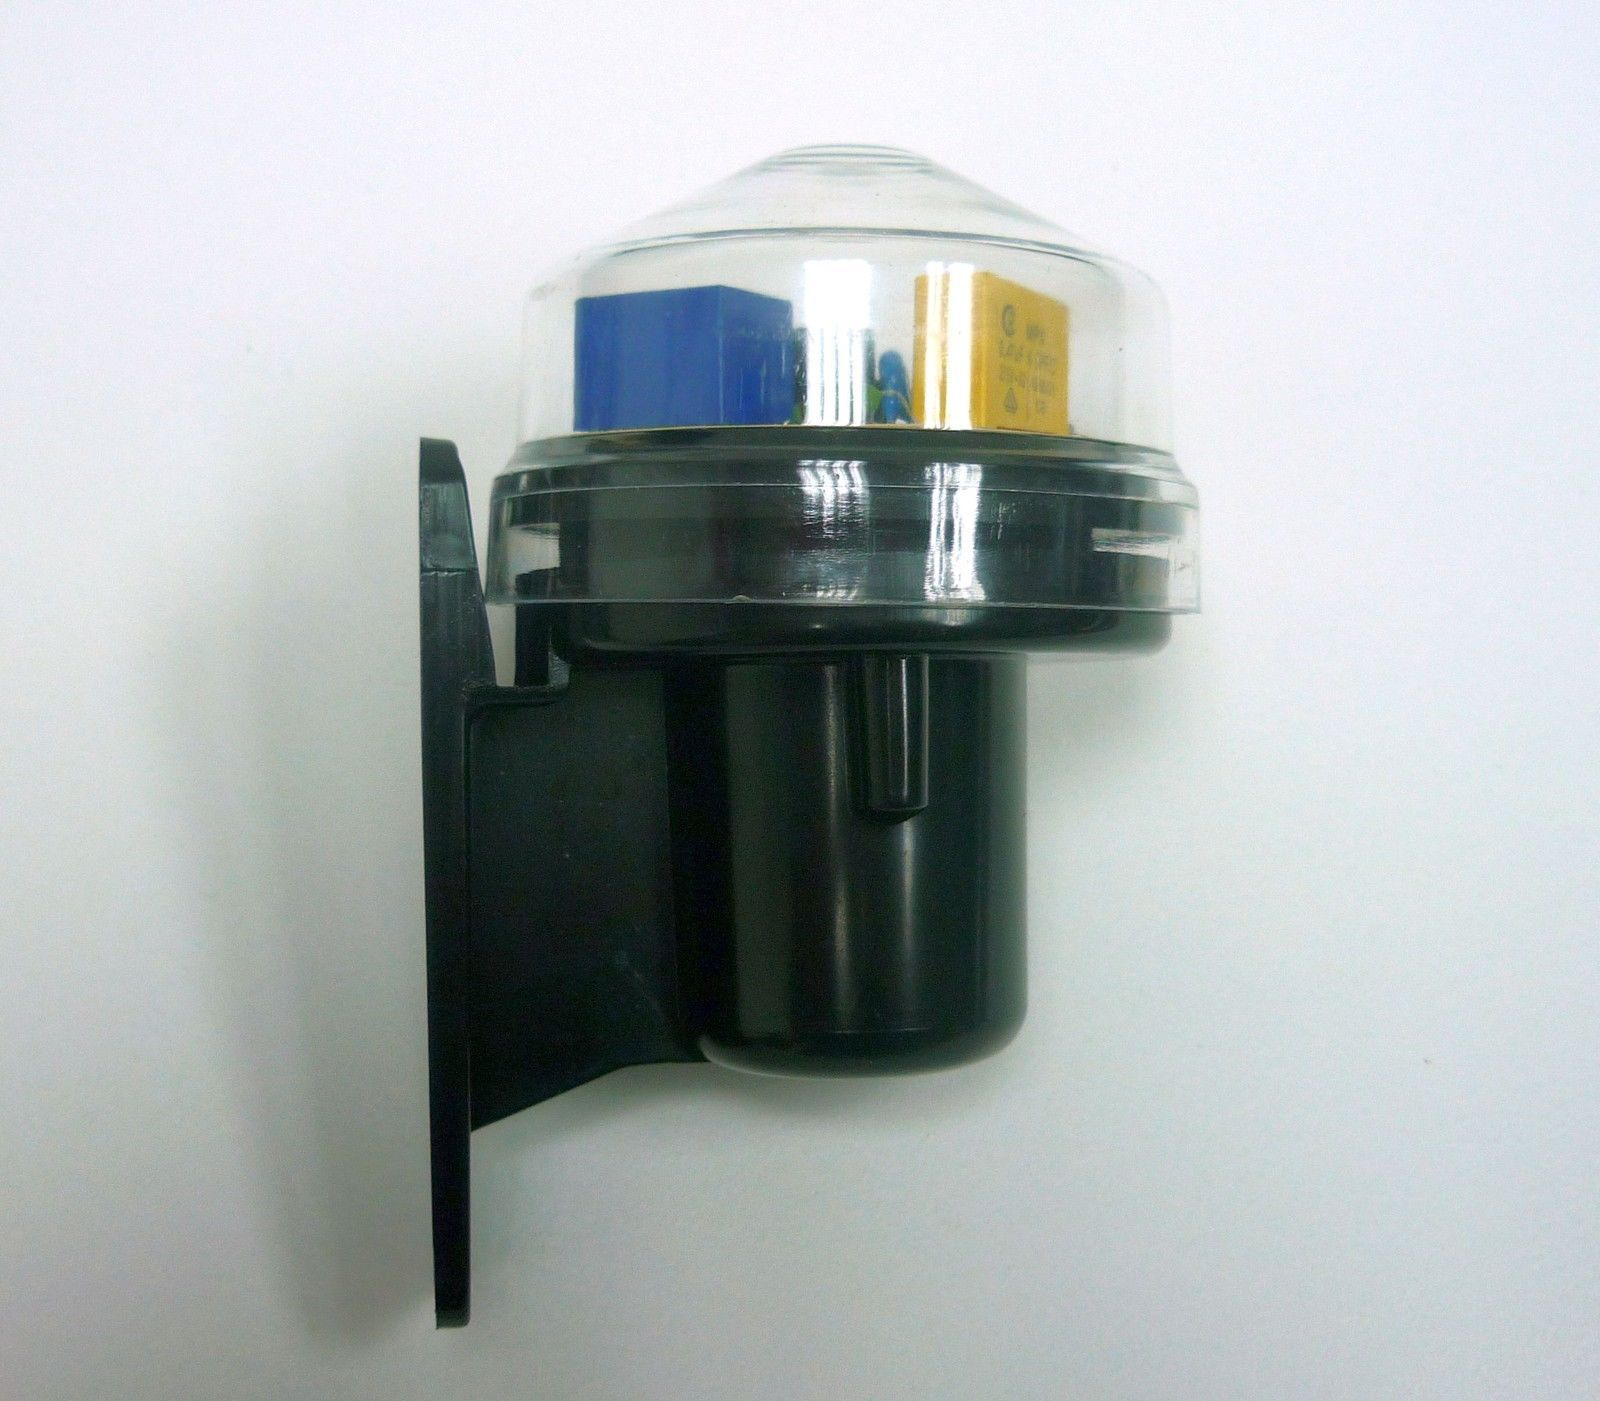 Ip44 photocell daylight dusk till dawn sensor outdoor photocell ip44 photocell daylight dusk till dawn sensor outdoor photocell light switch 10a aloadofball Image collections